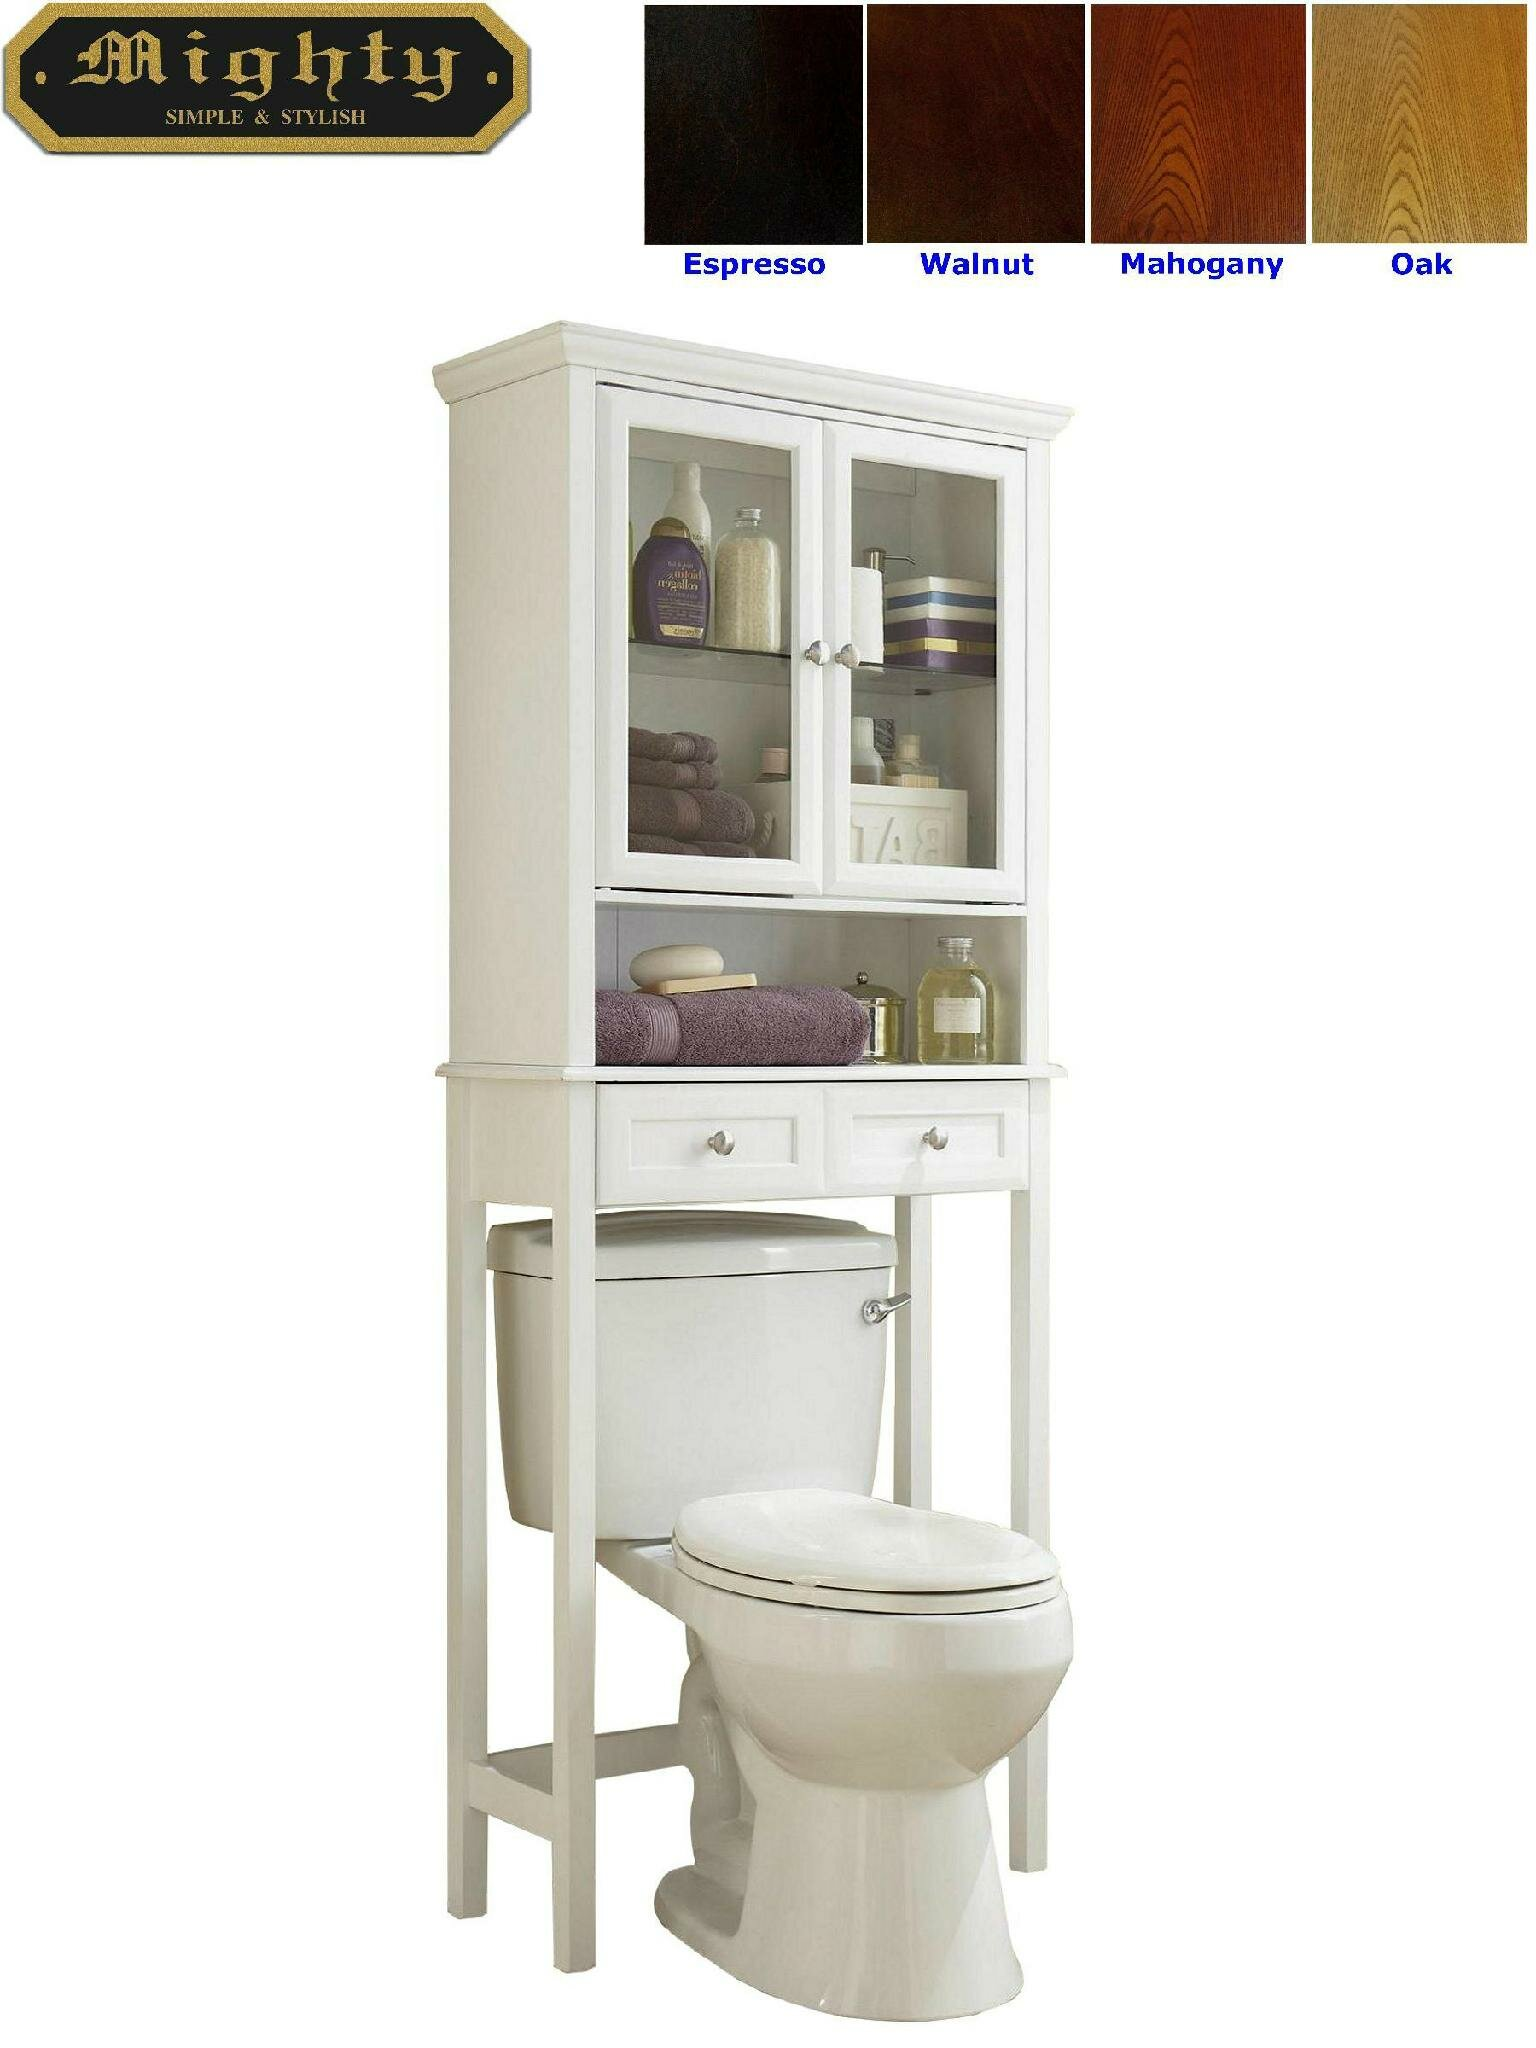 Bathroom Metal Etagere Bathroom Toilet Etagere Space Saver Toilet Cabinet